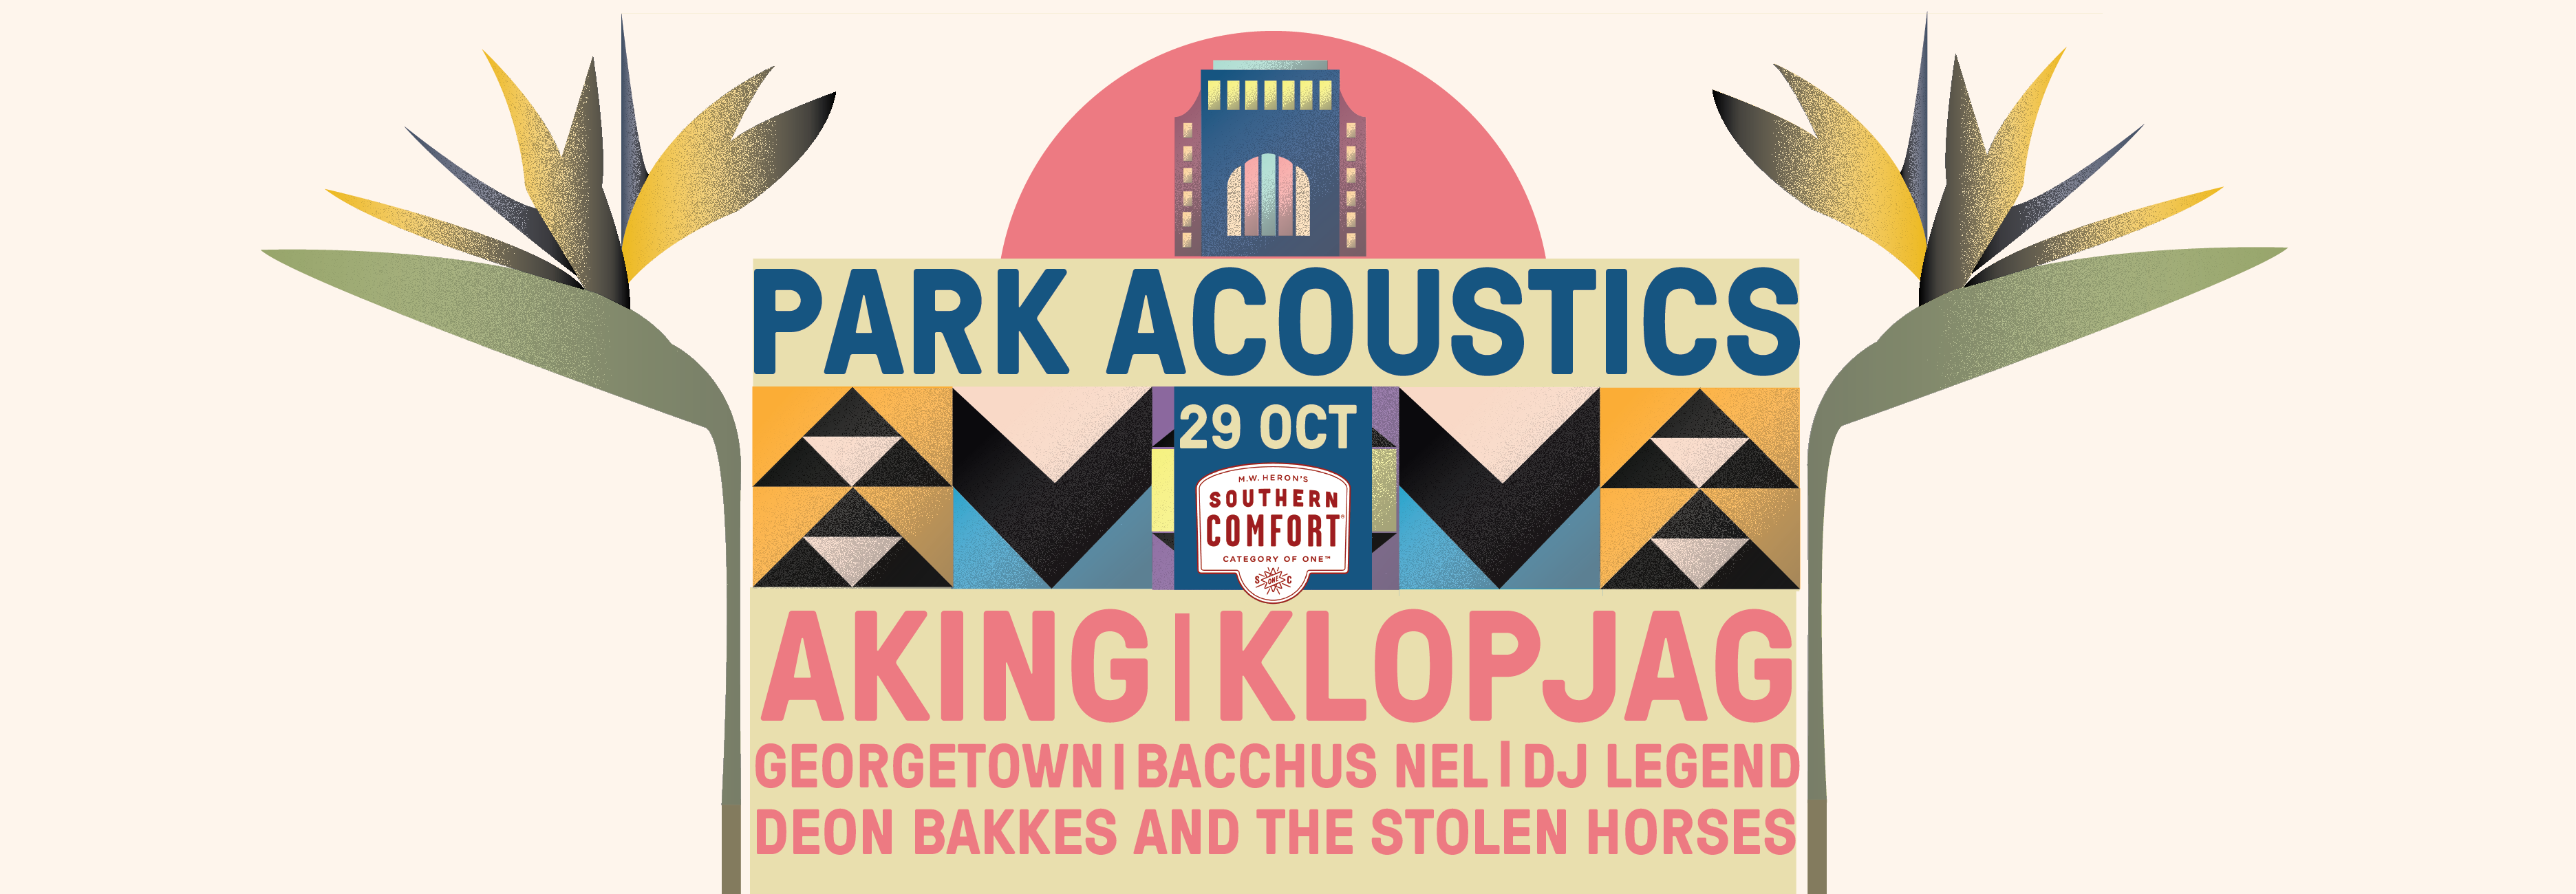 GIVEAWAY: Park Acoustics October 2017 Ticket Giveaway